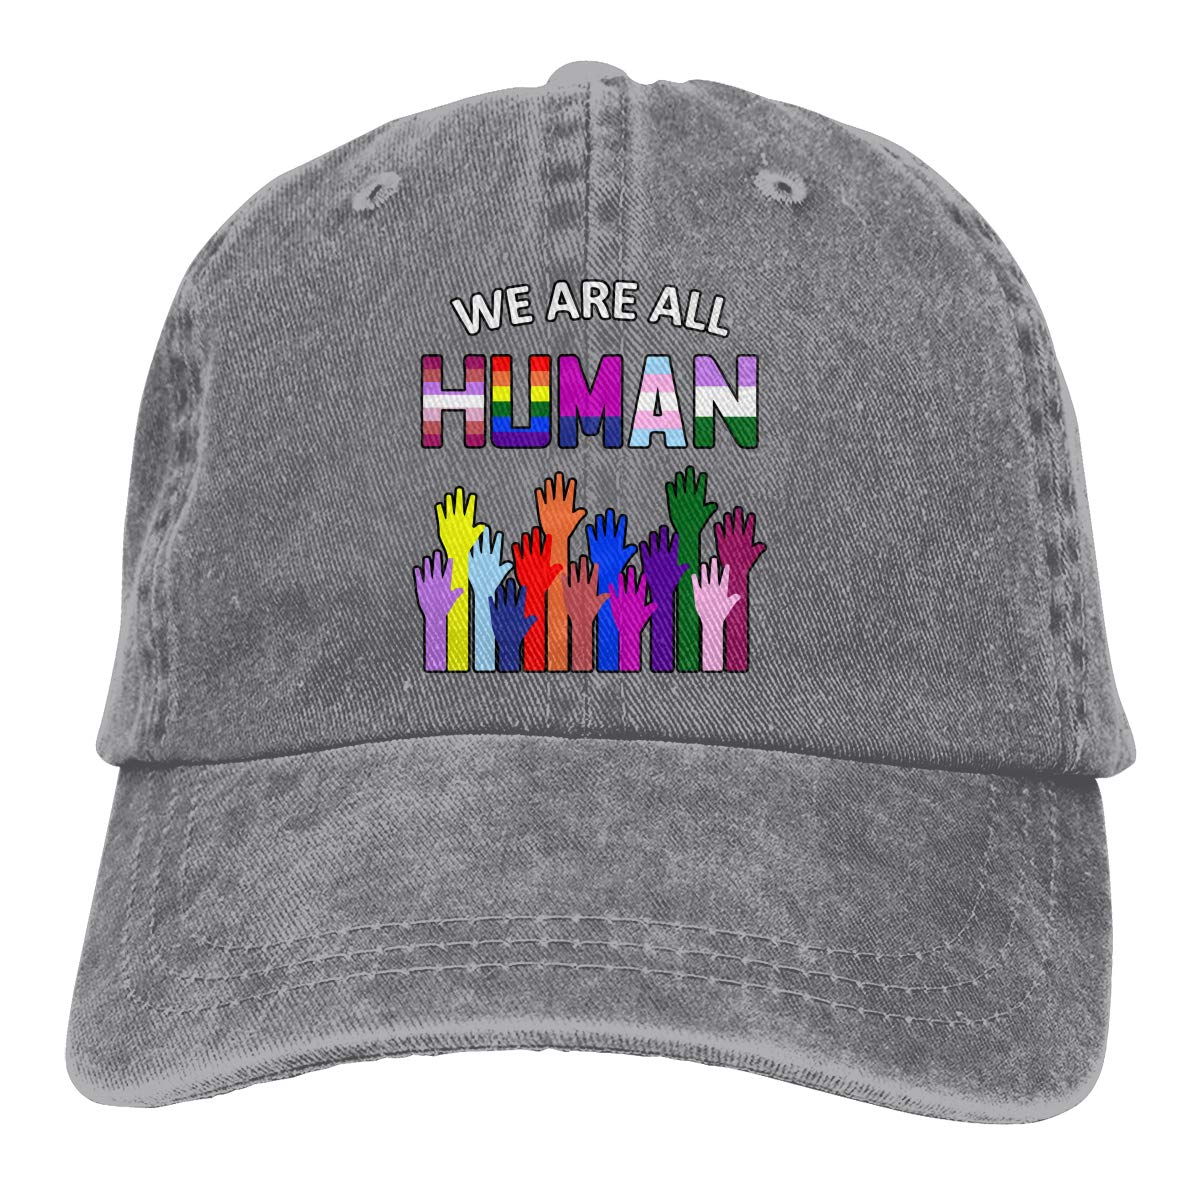 Men Women Distressed Denim Fabric Baseball Cap We are All Human LGBT Gay Hiphop Cap